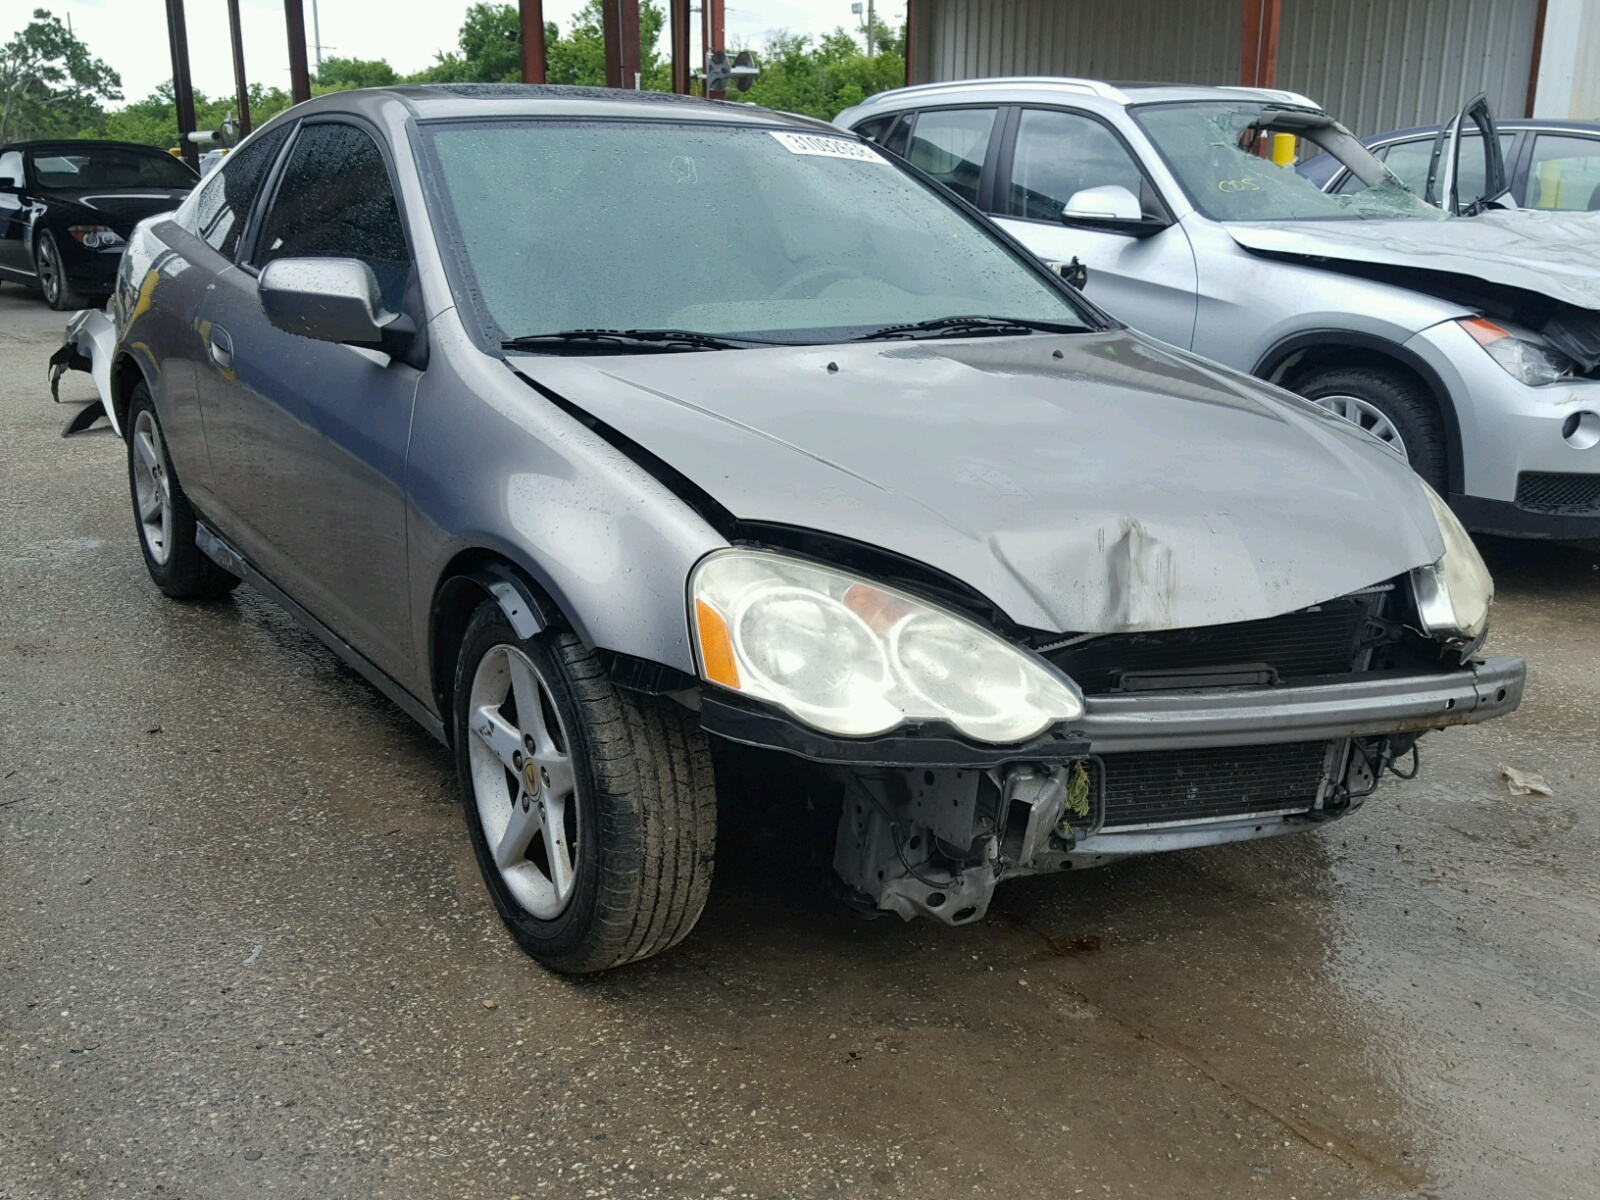 JHDCS SILVER ACURA RSX On Sale In FL TAMPA - 2004 acura rsx for sale